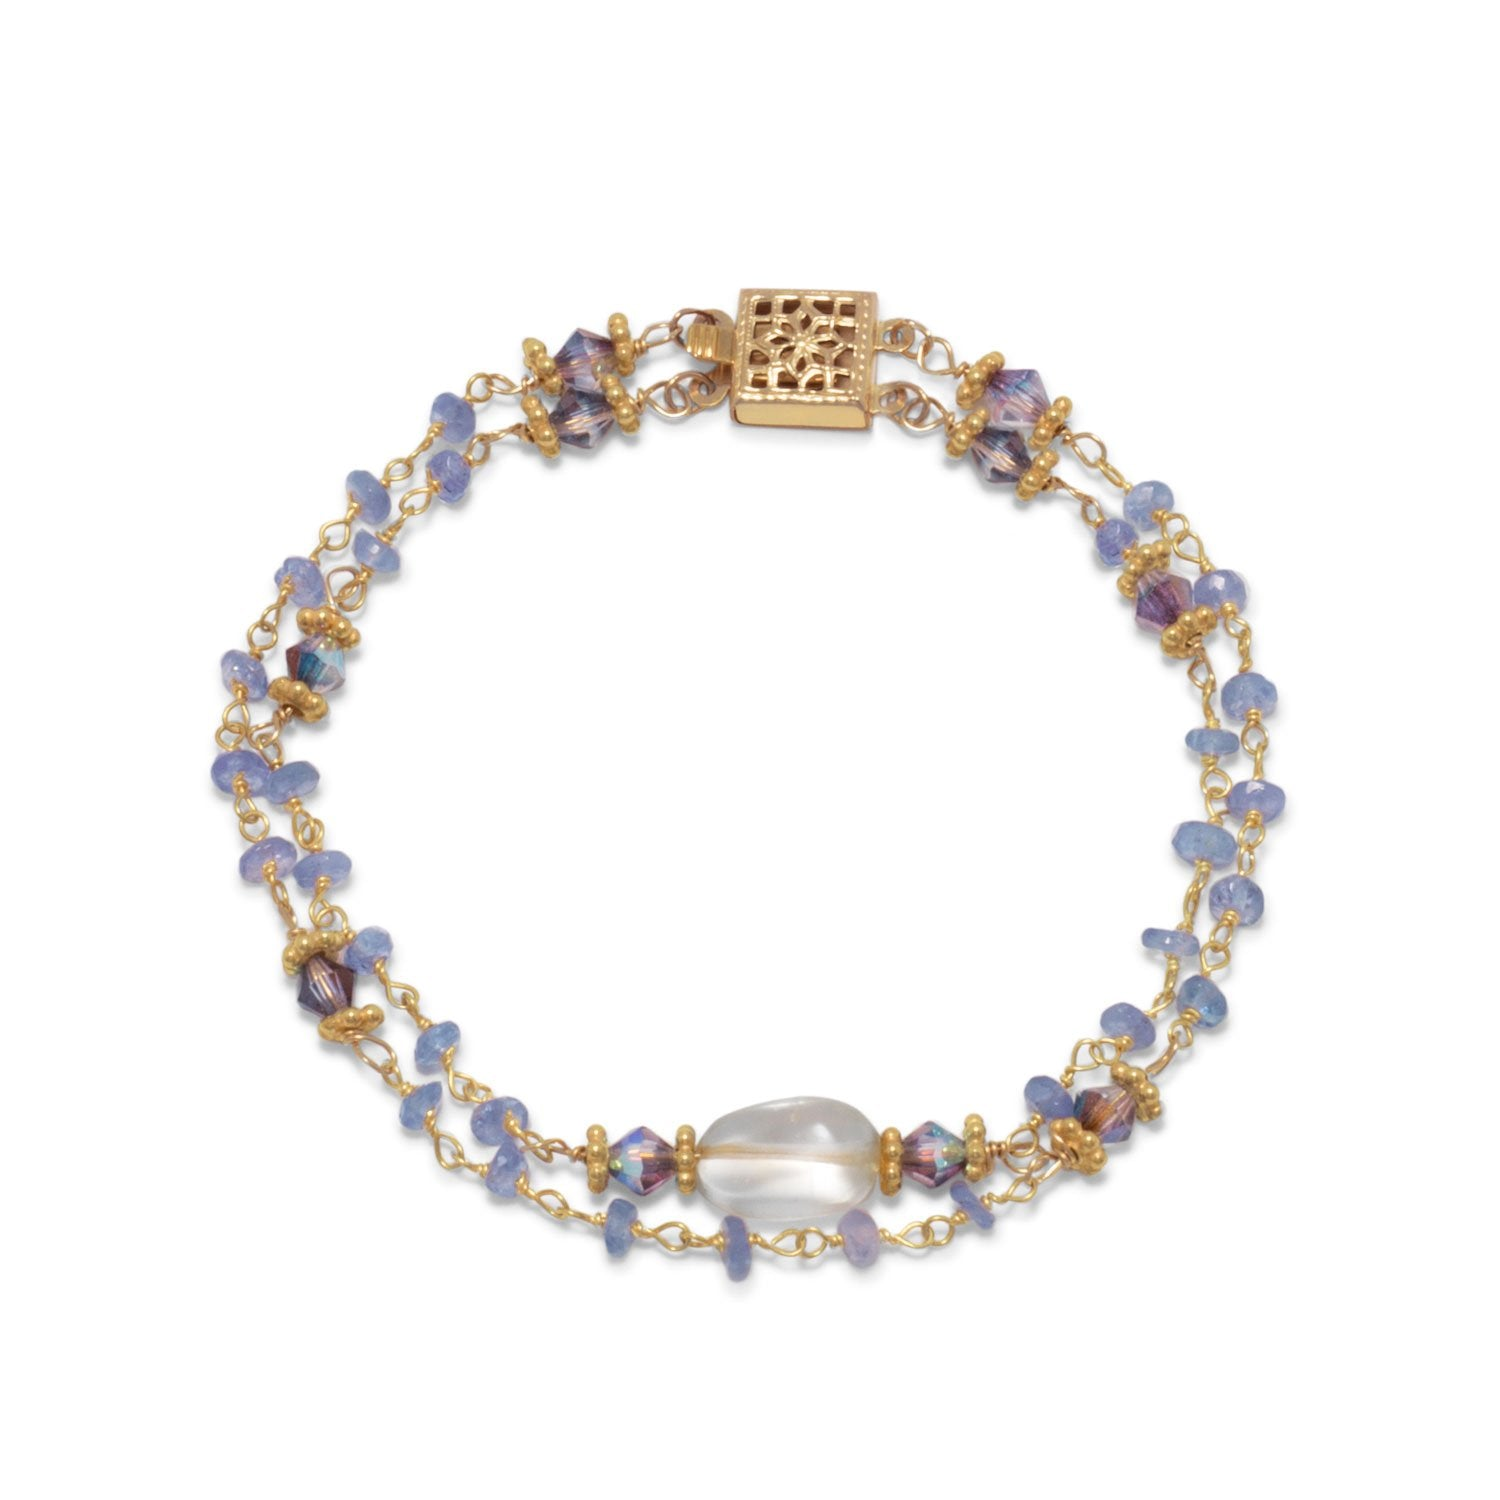 14 Karat Gold Plated Double Strand Tanzanite and Citrine Bracelet - Rocky Mt. Discount Outlet